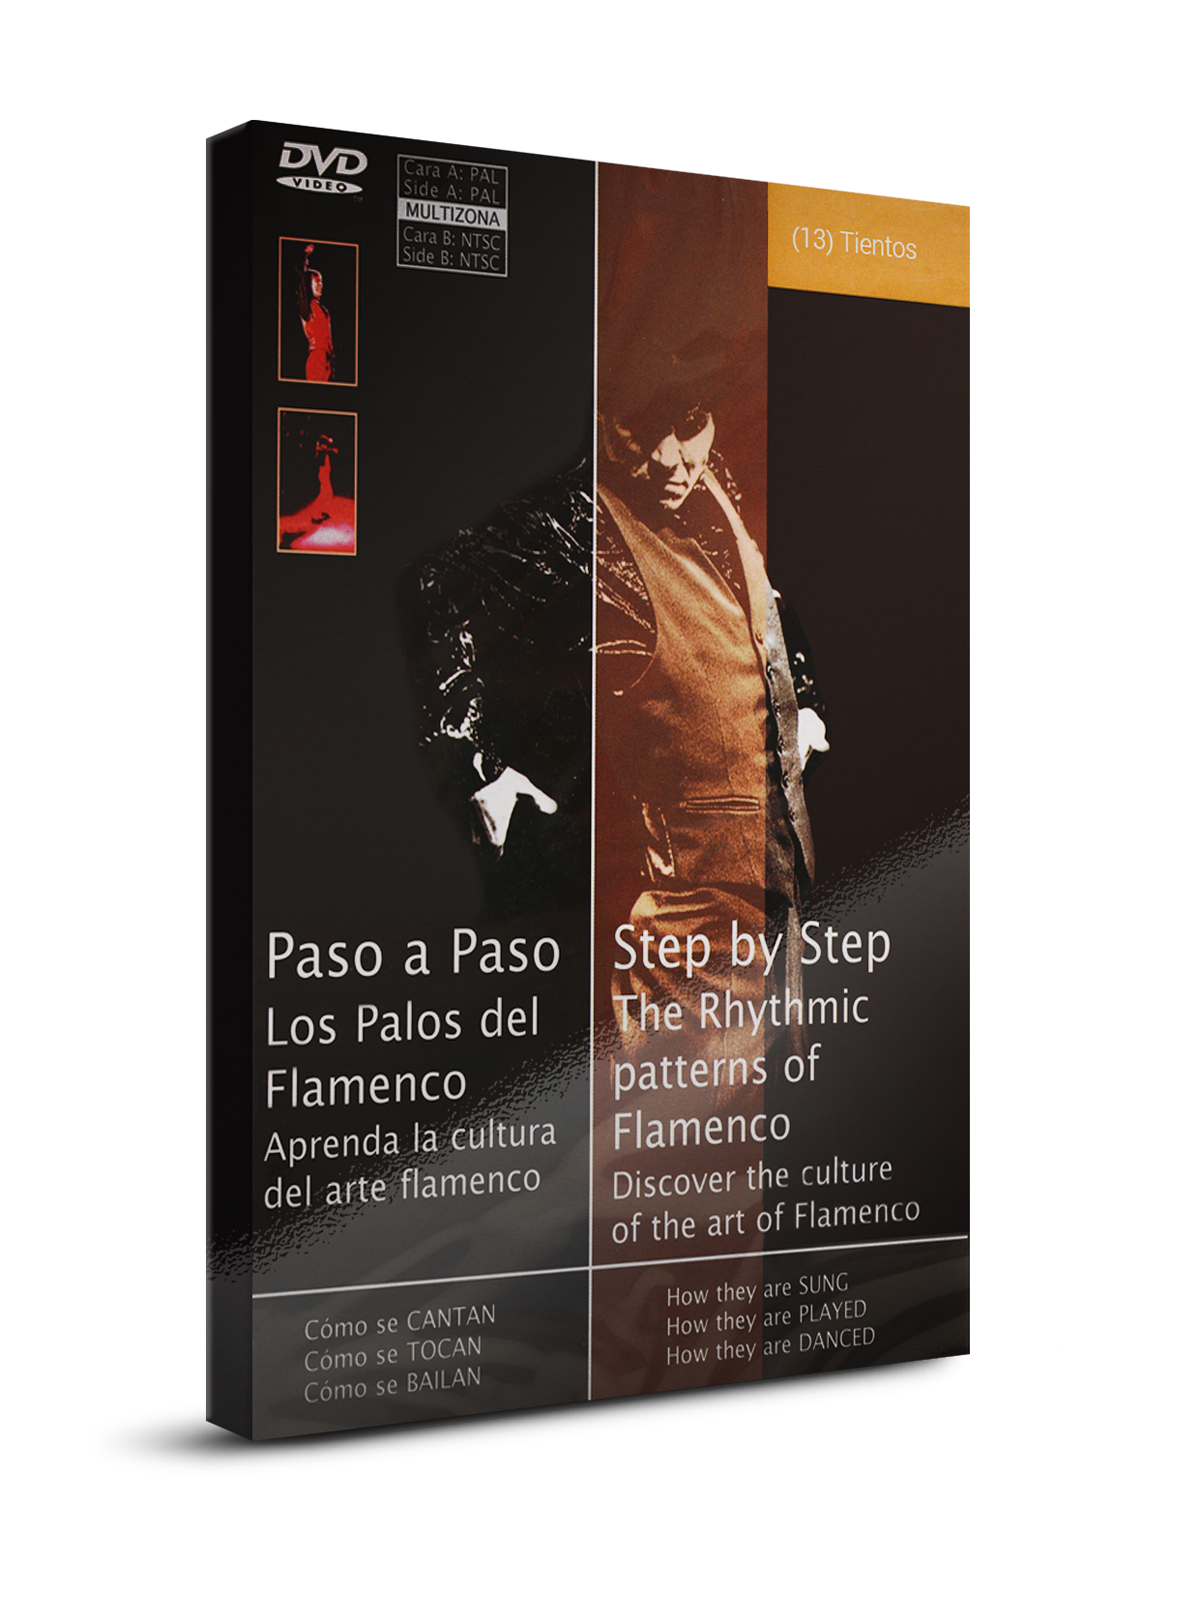 Flamenco dance classes Tientos DVD